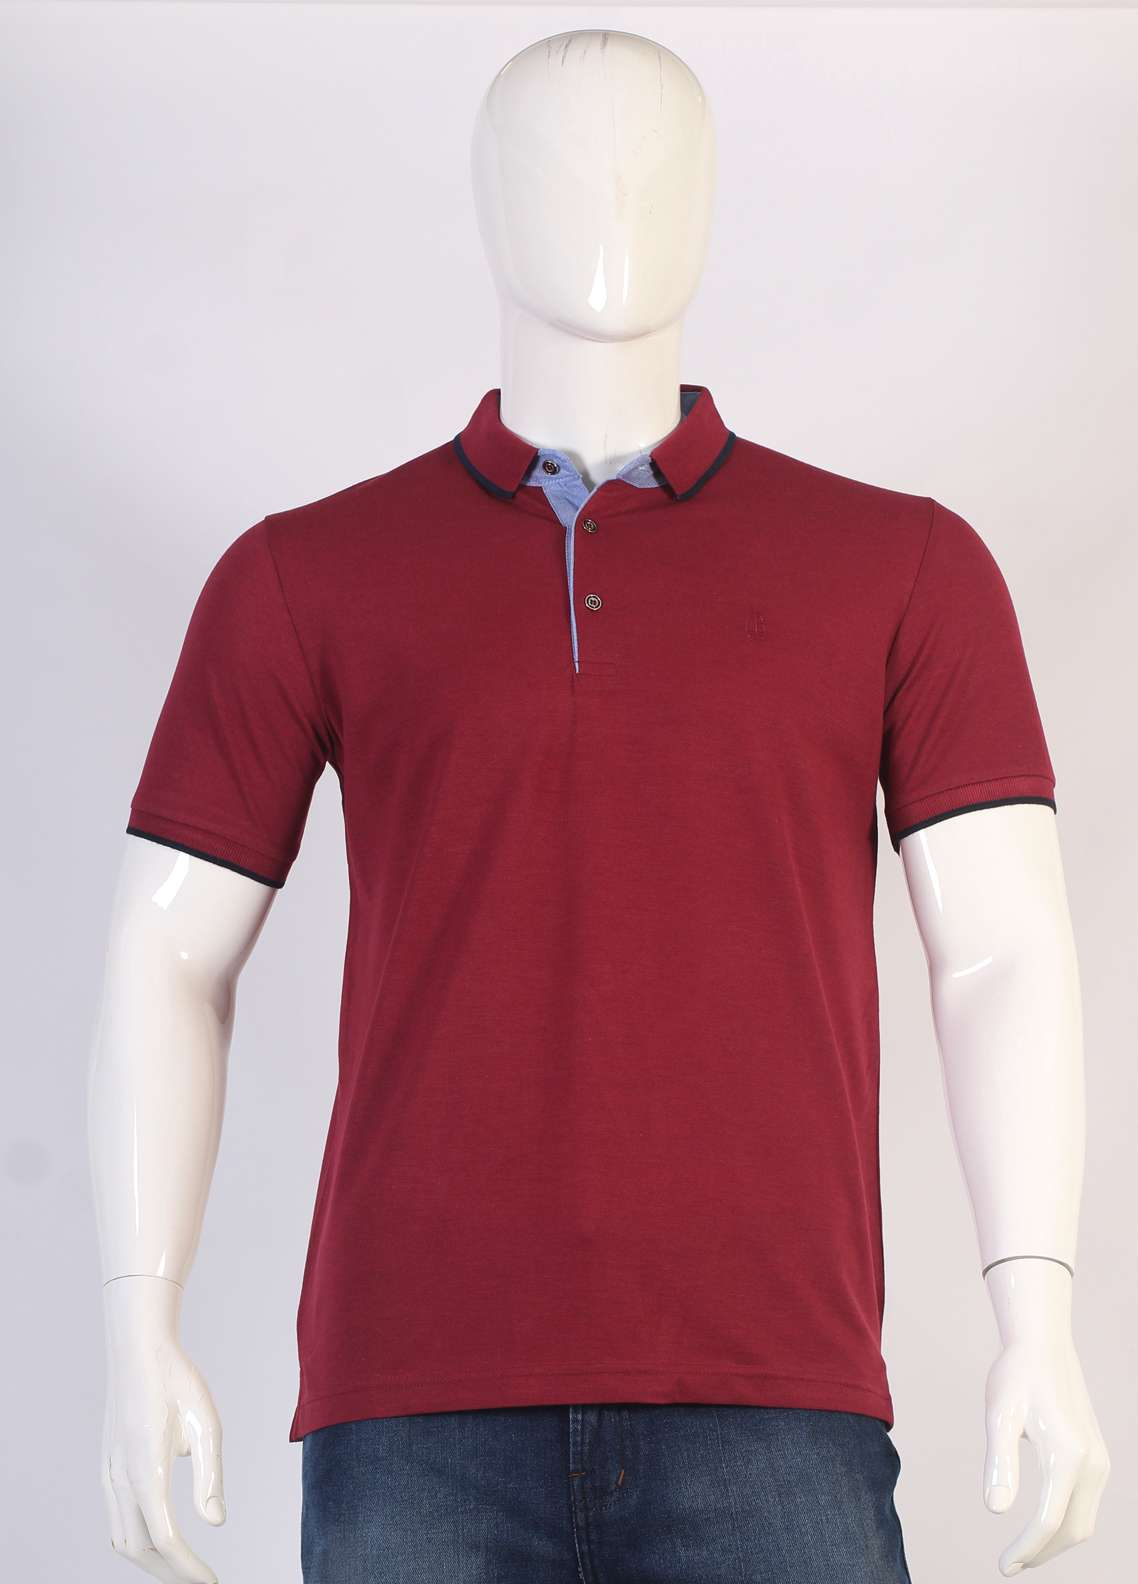 Sanaulla Exclusive Range Jersey Polo Men T-Shirts - Maroon TKM18S 317-05